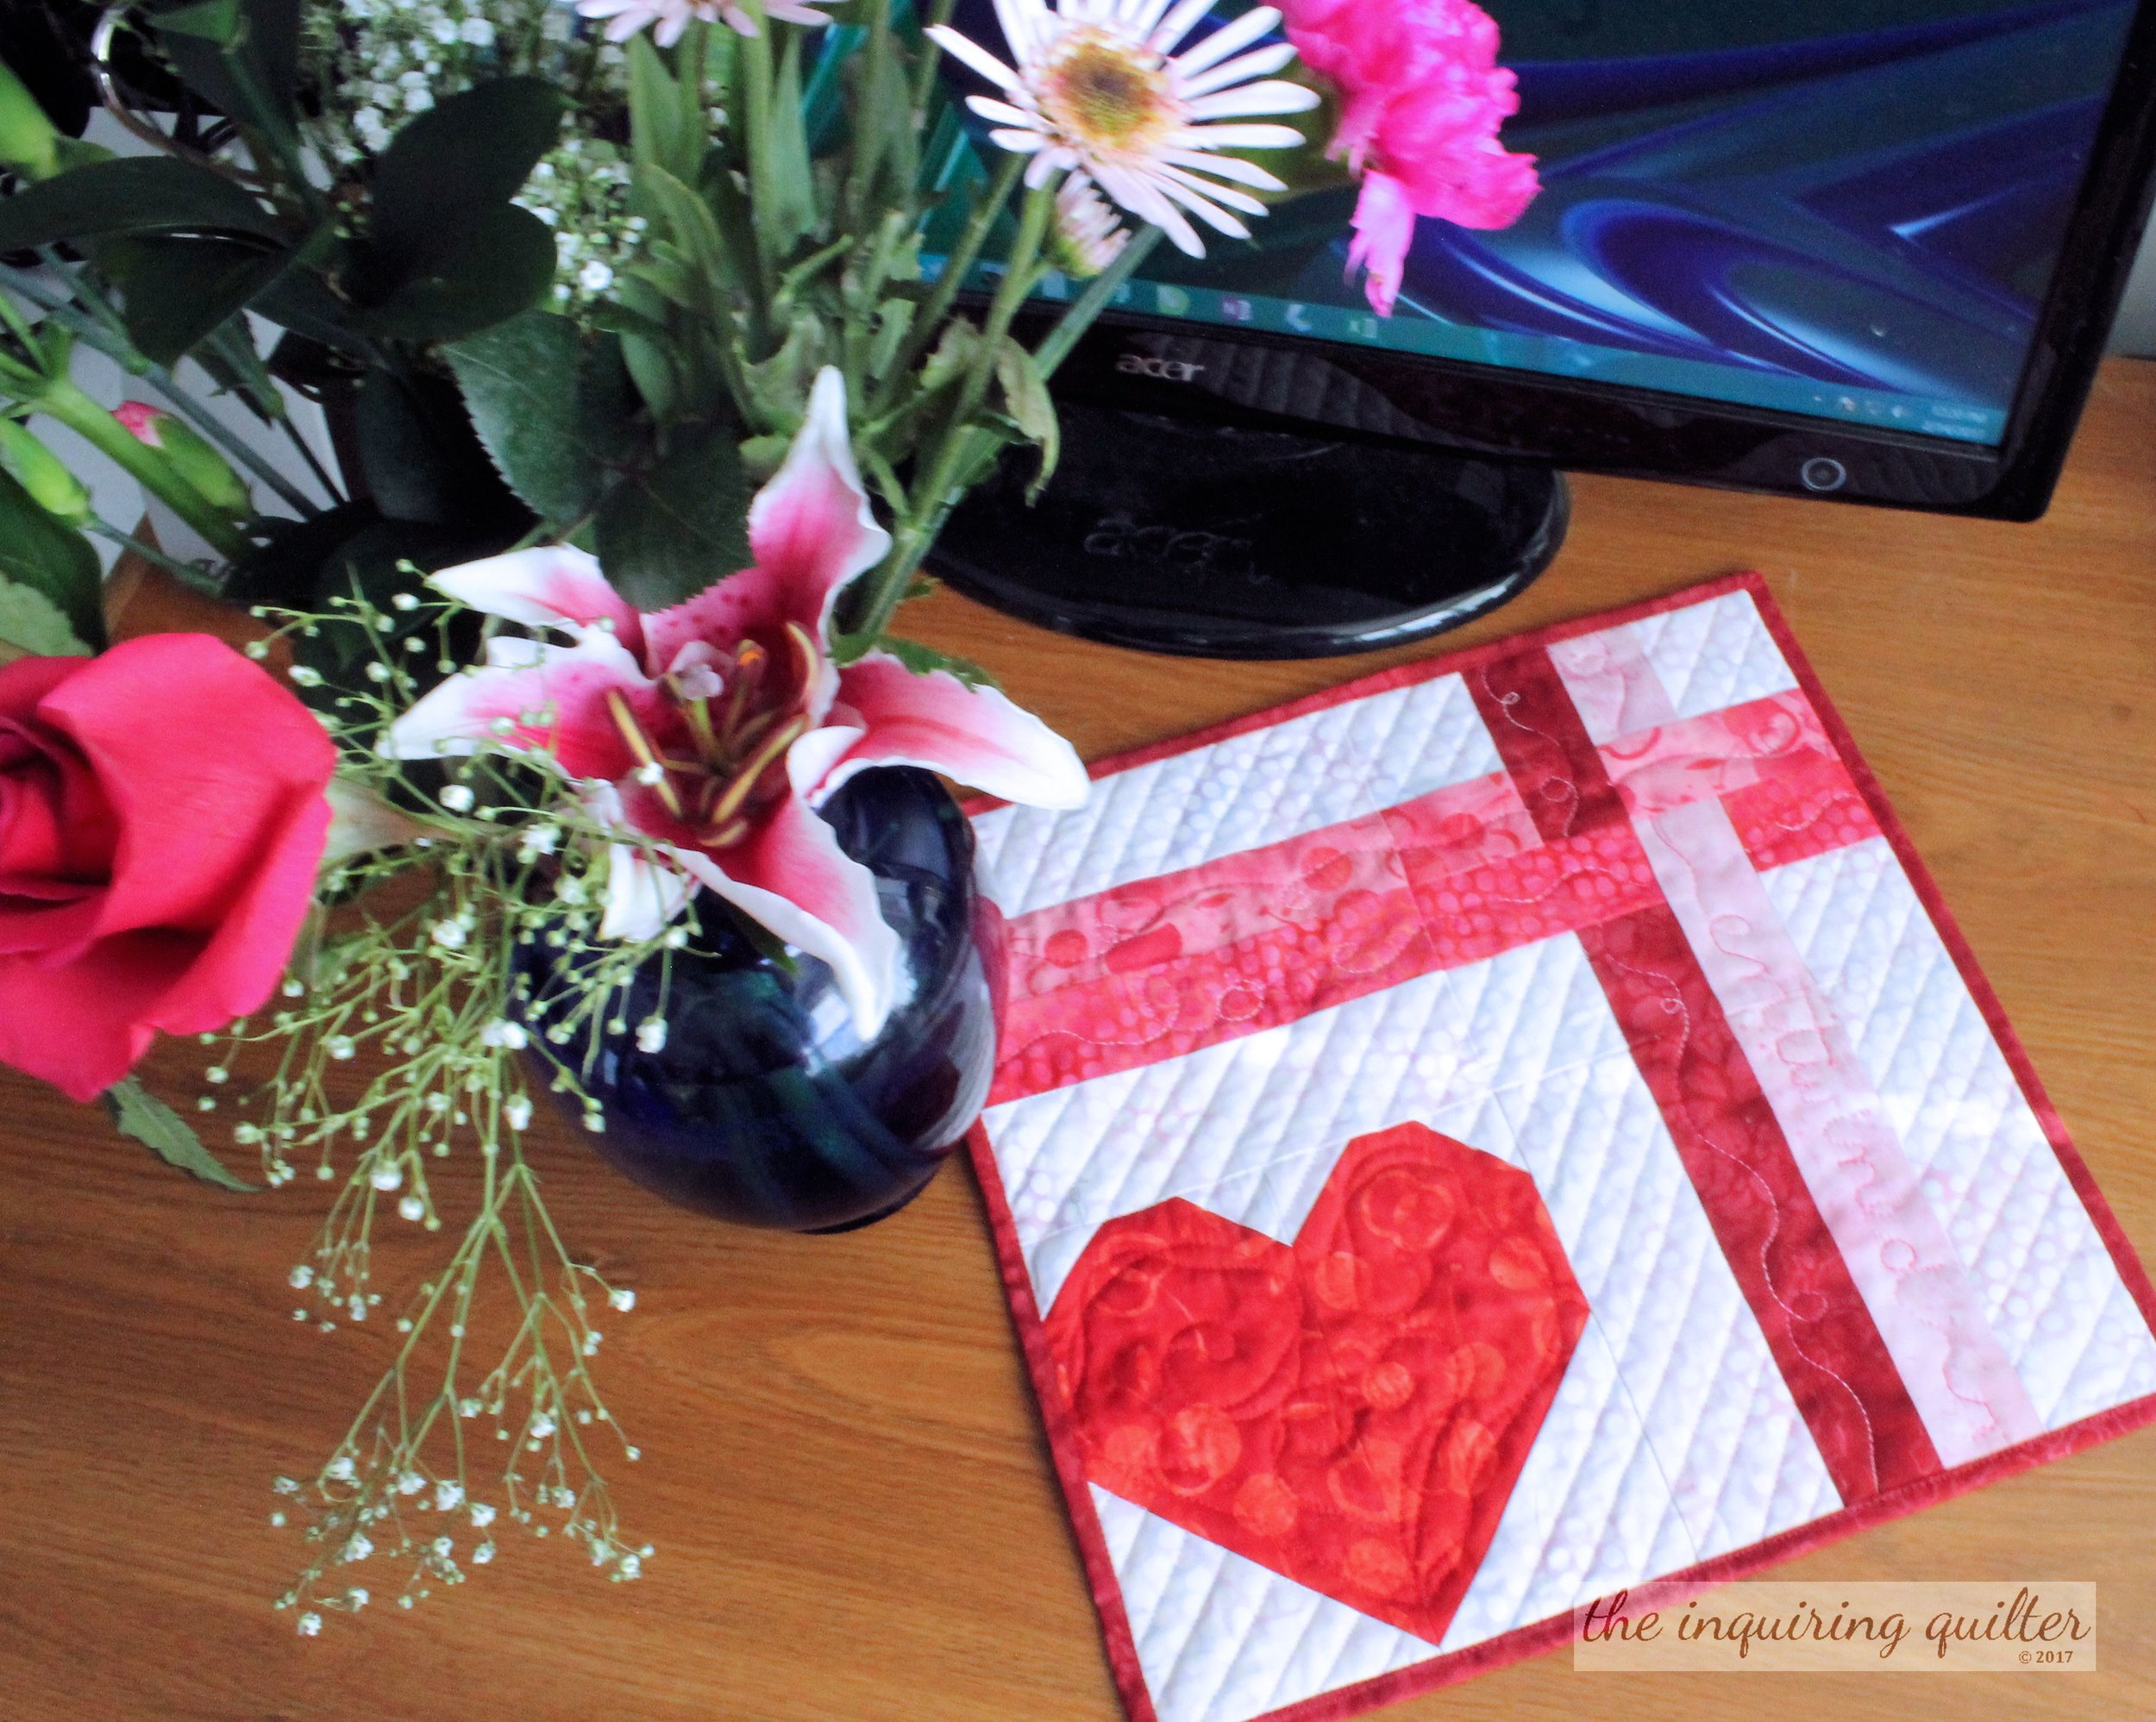 A mini quilt for Valentine's